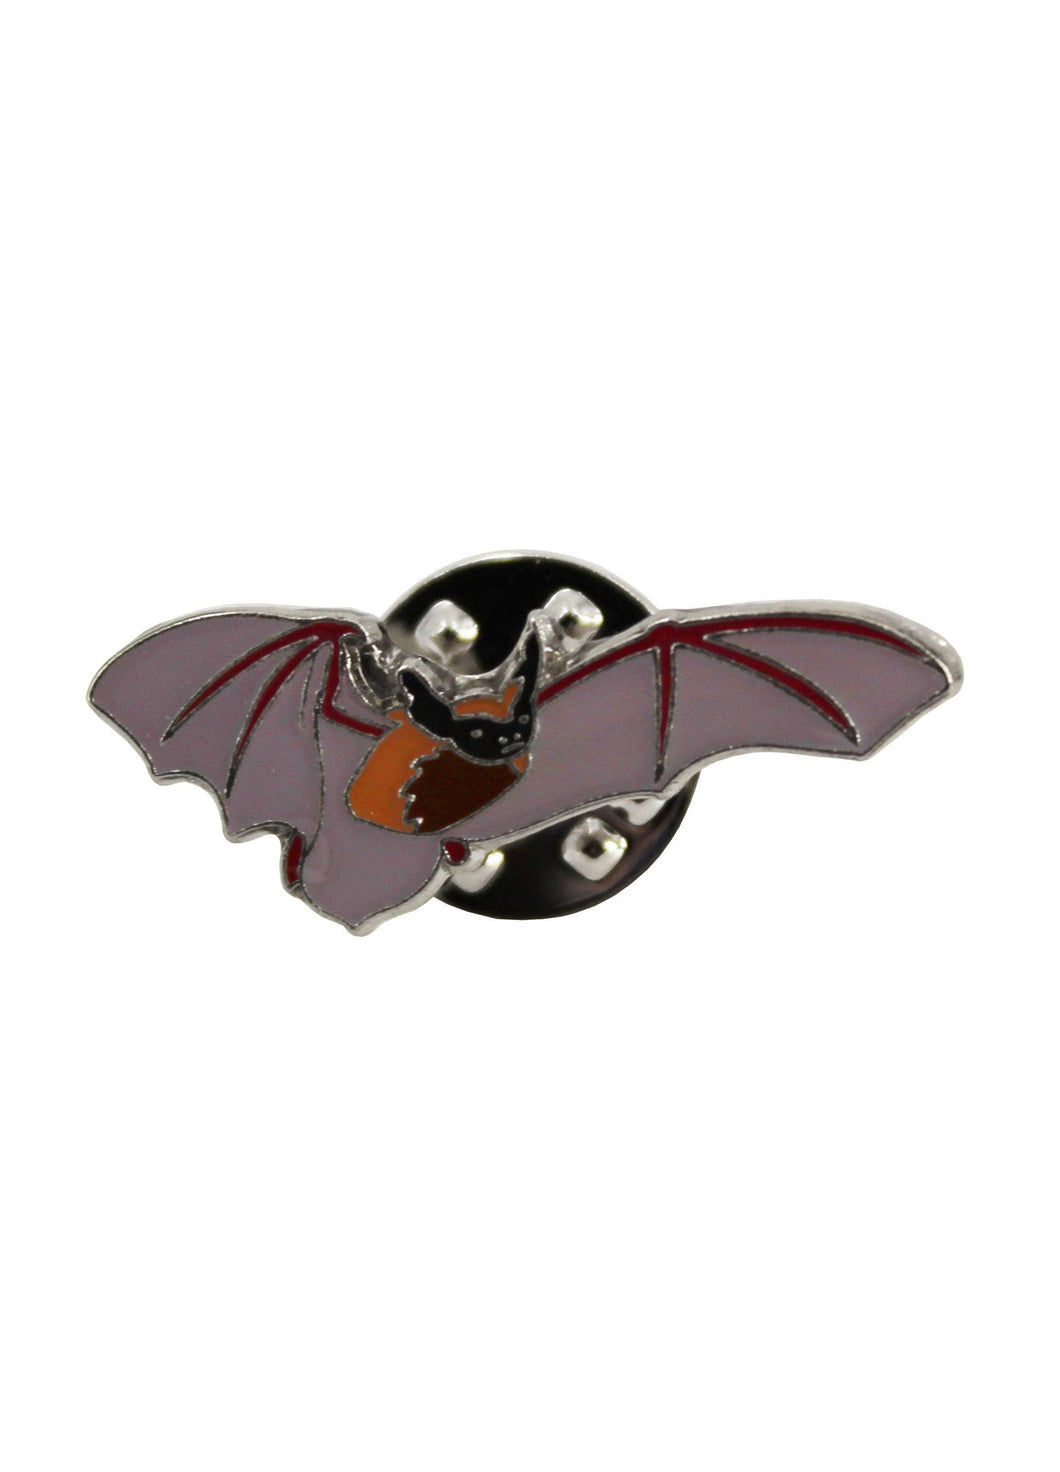 Bat Conservation Trust Common Pipistrelle Bat Pin Badge - Kate's Clothing